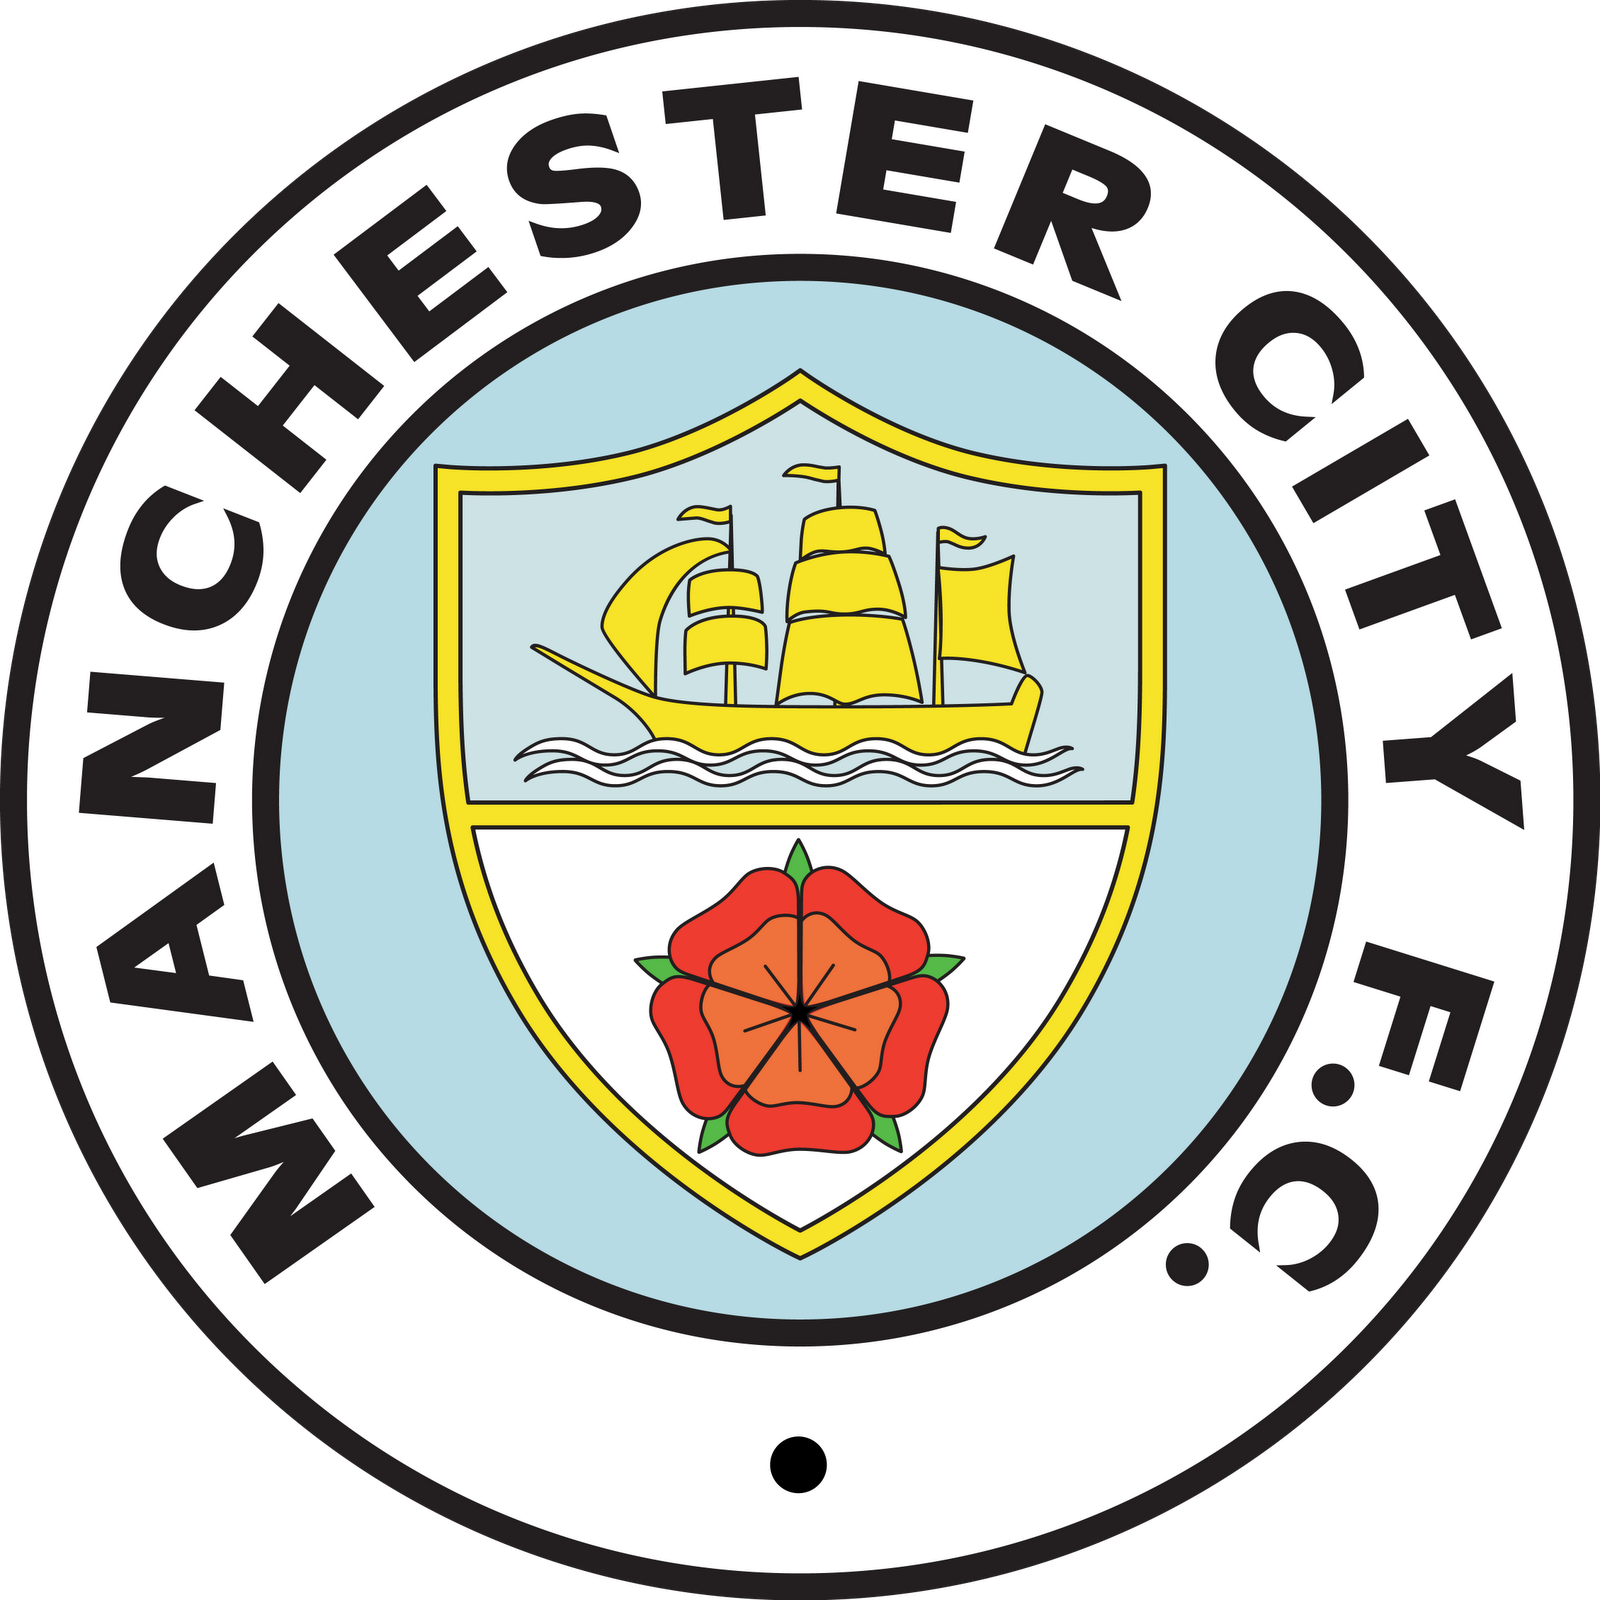 Manchester City Football Club Country England United Kingdom Pais Inglaterra Reino Unido F Man City Badge Manchester City Football Club Football Logo